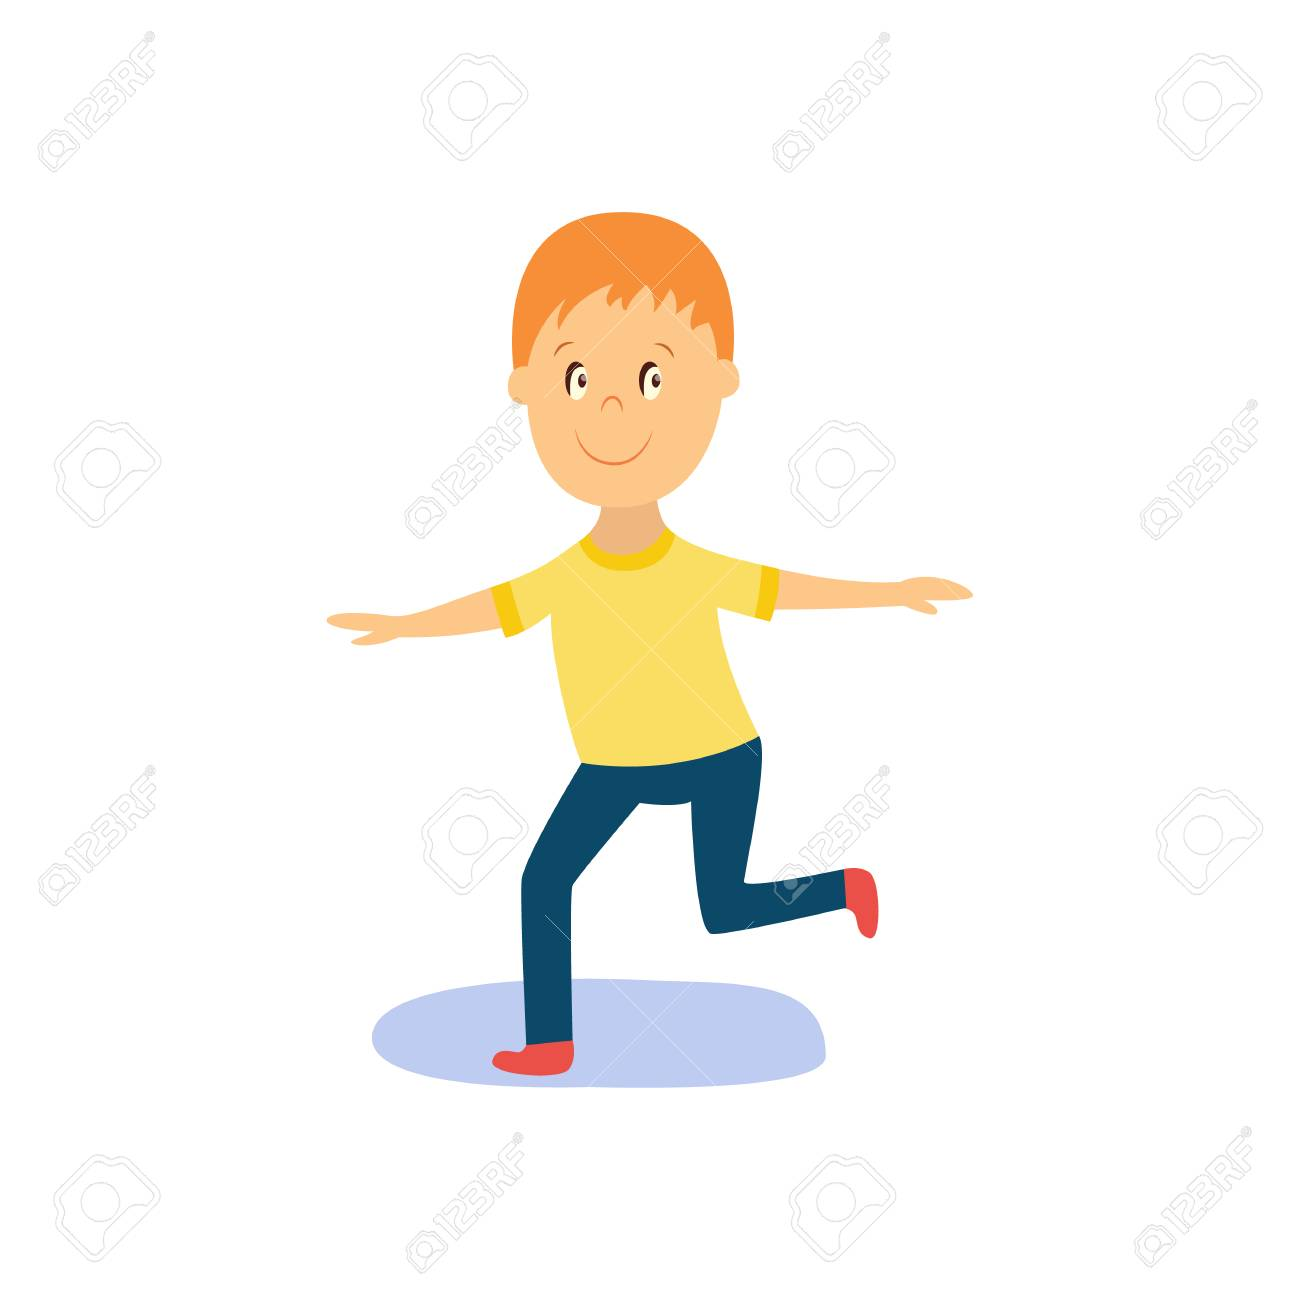 Vector vector flat cartoon boy child dancing alone in yellow t shirt smiling little dancer male character isolated illustration on a white background